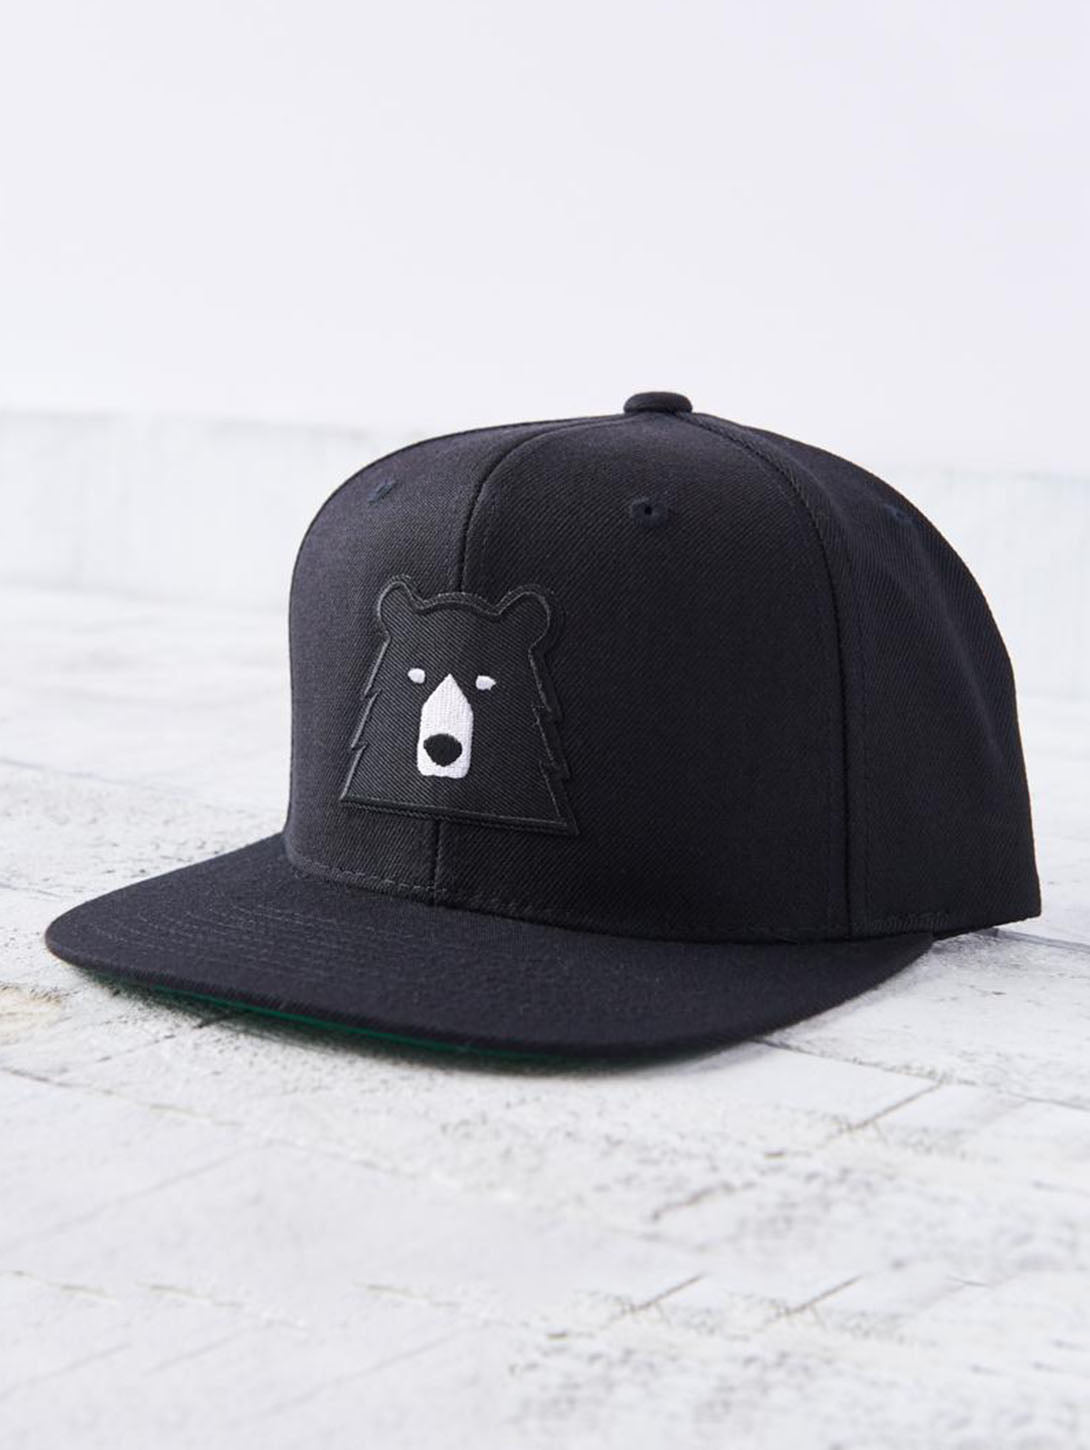 Snapback Bear Hat - Black/Black-North Standard Trading Post-Over the Rainbow